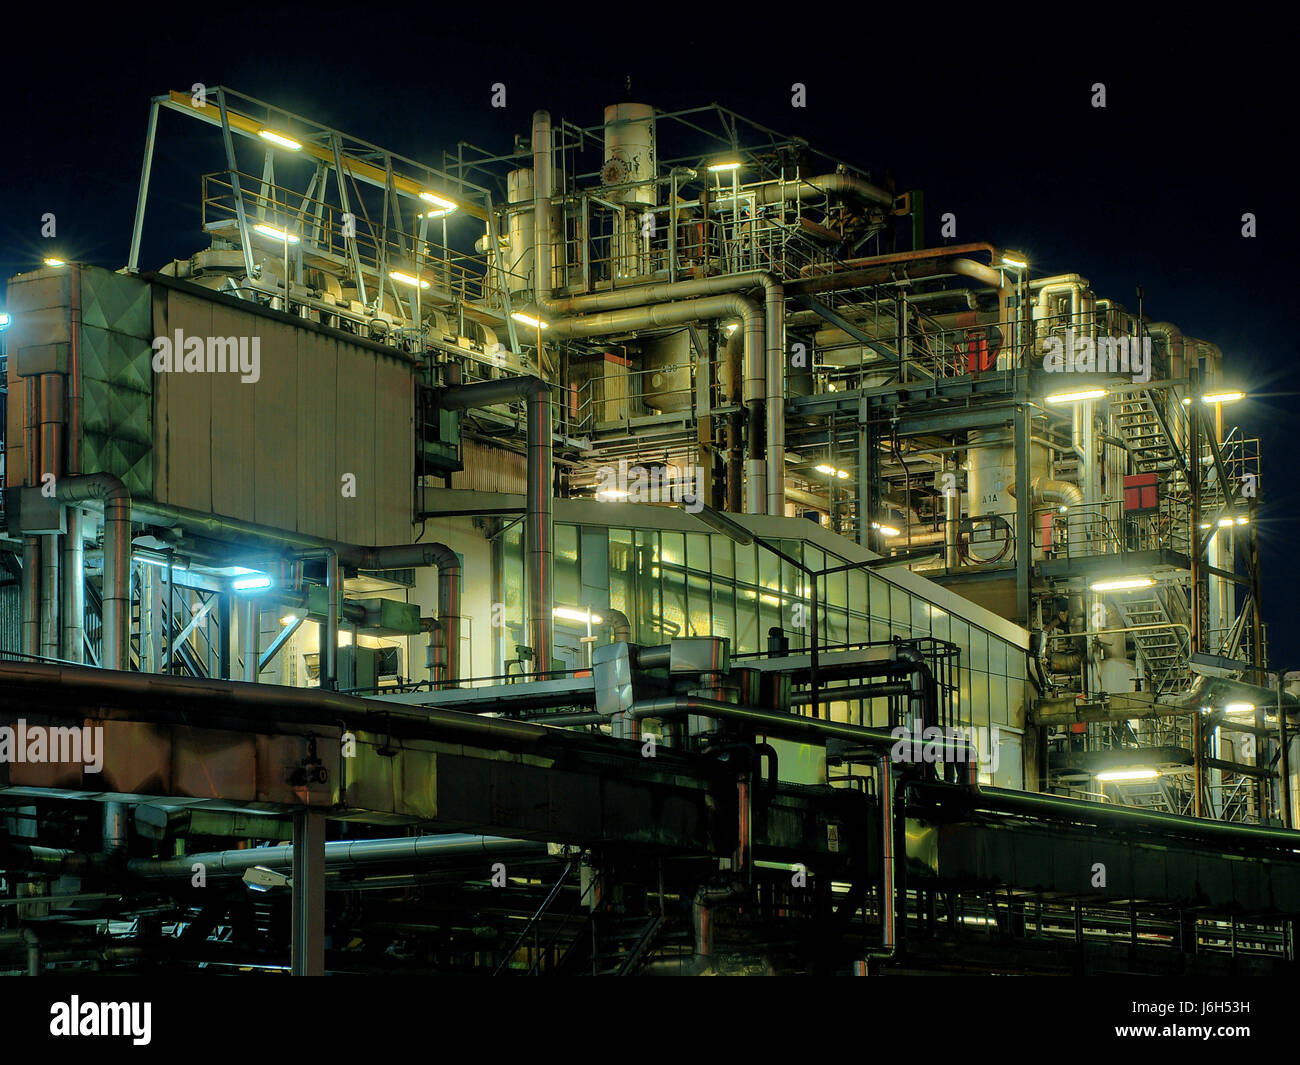 industry at night tube wax chemistry distillation paraffin industry at night - Stock Image